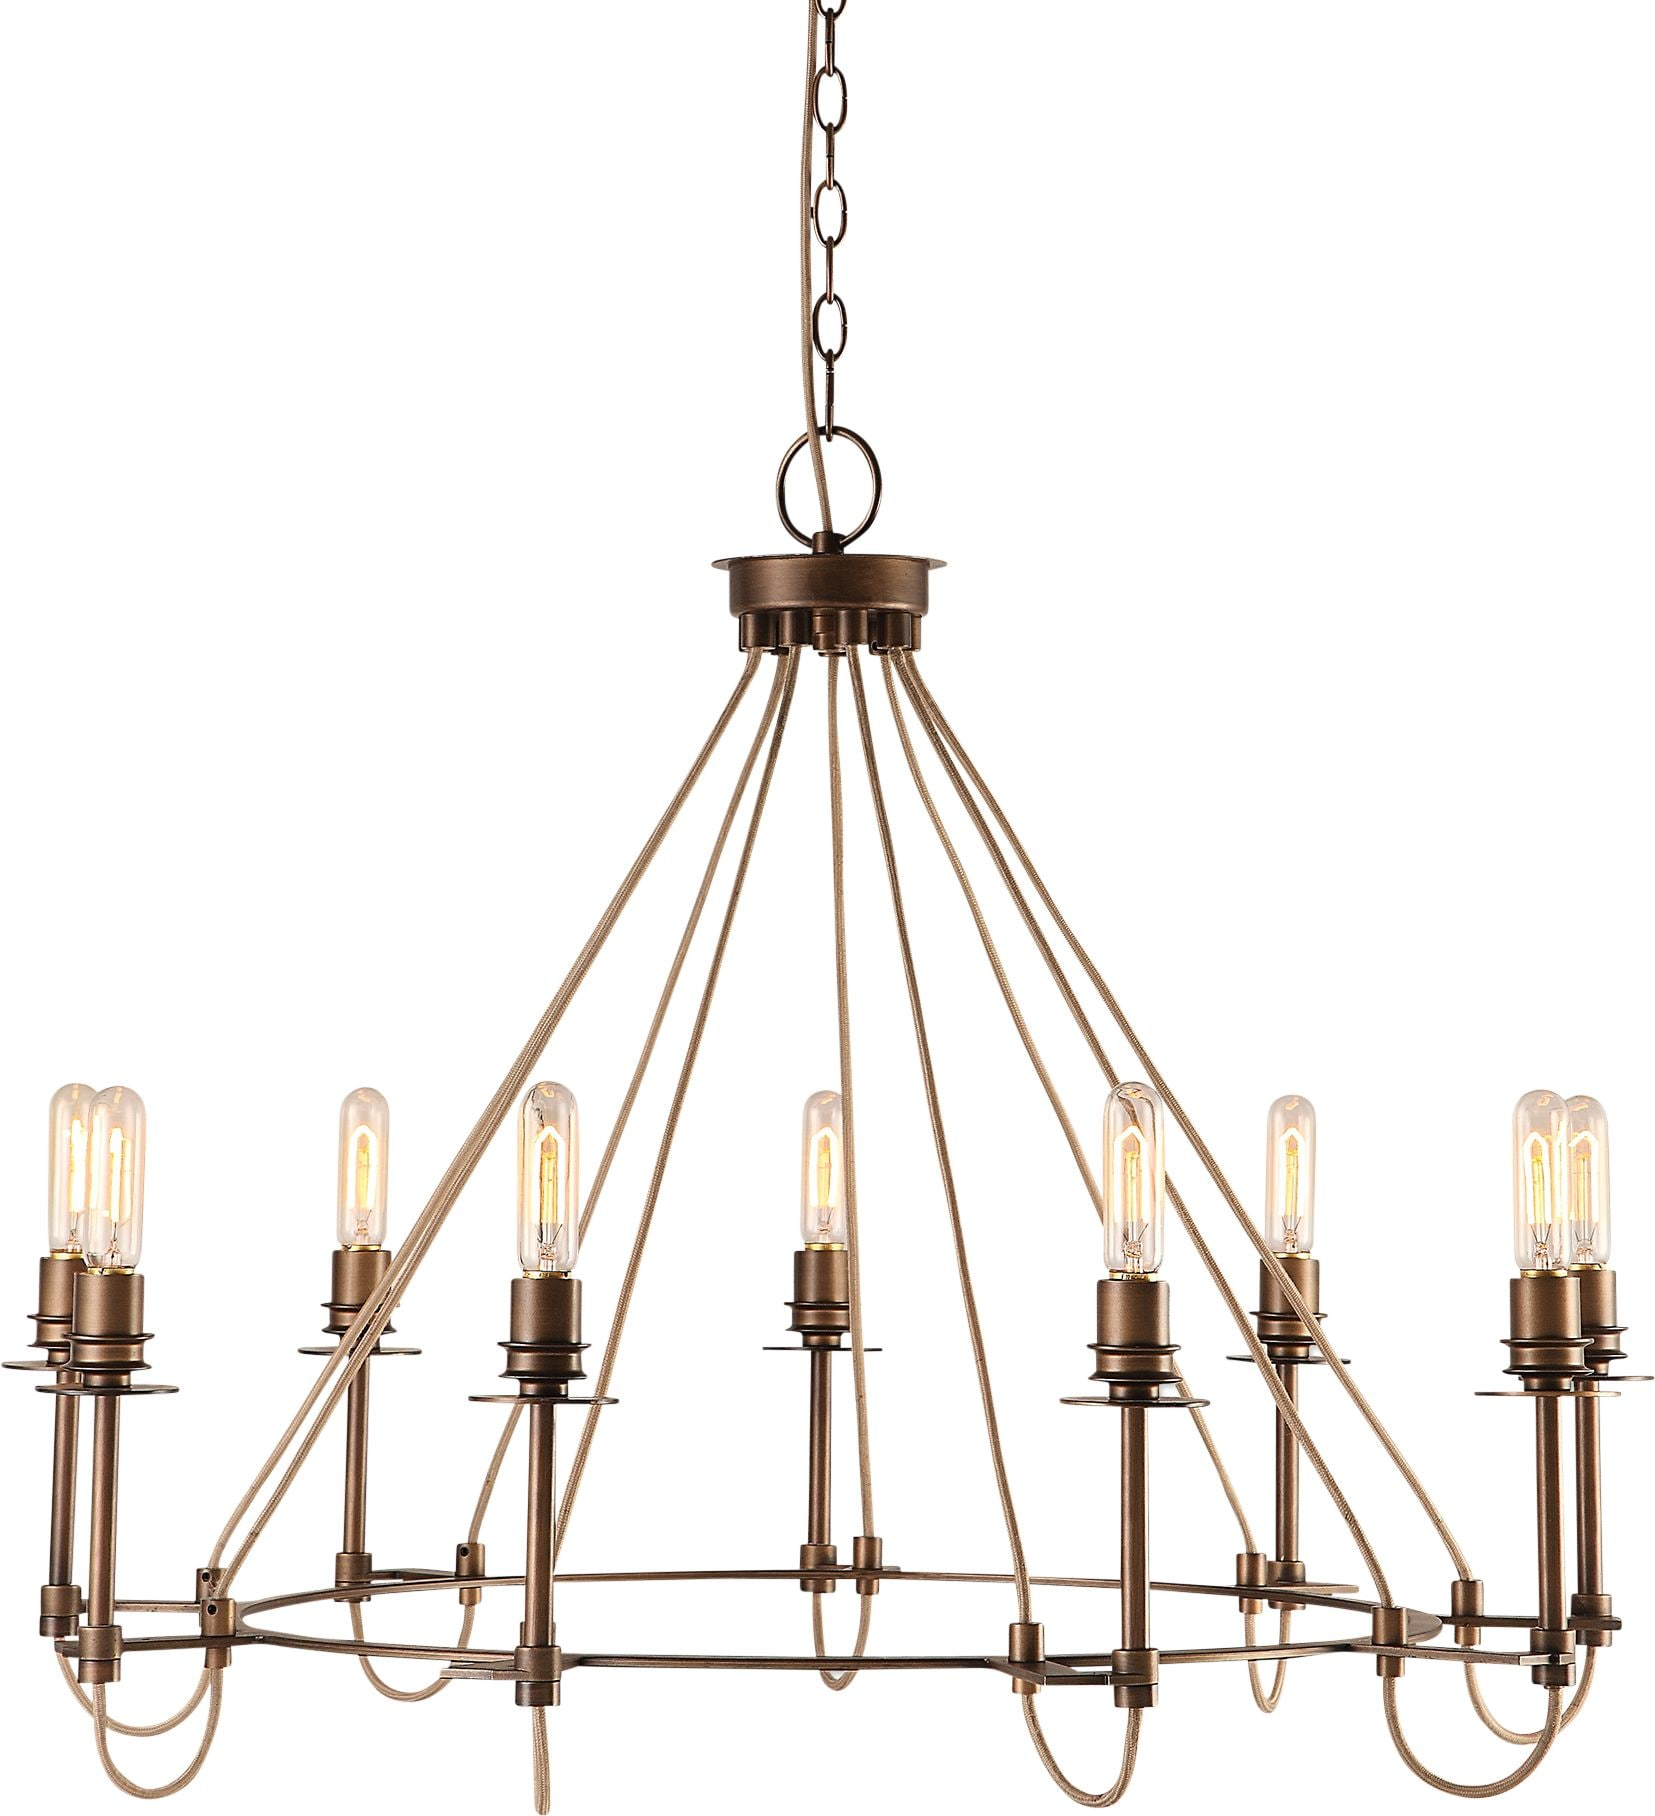 Home Accessories - Lyndhurst Chandelier